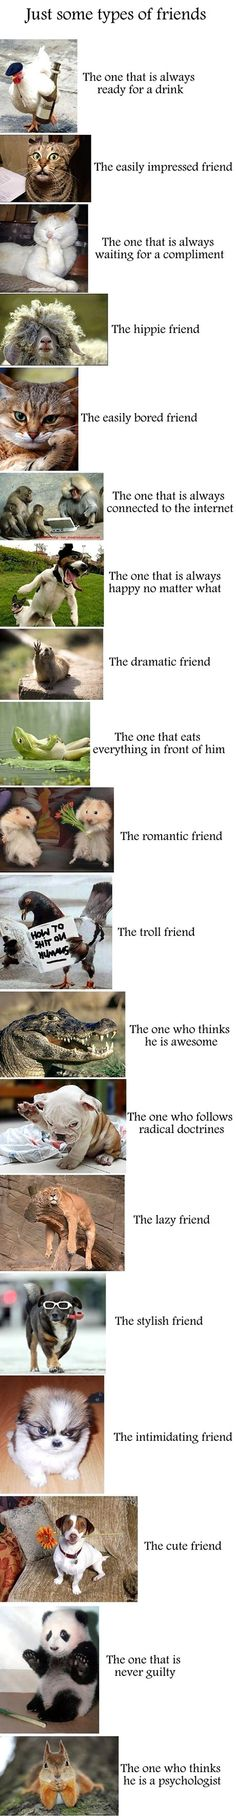 Types of friends in terms of cute animals